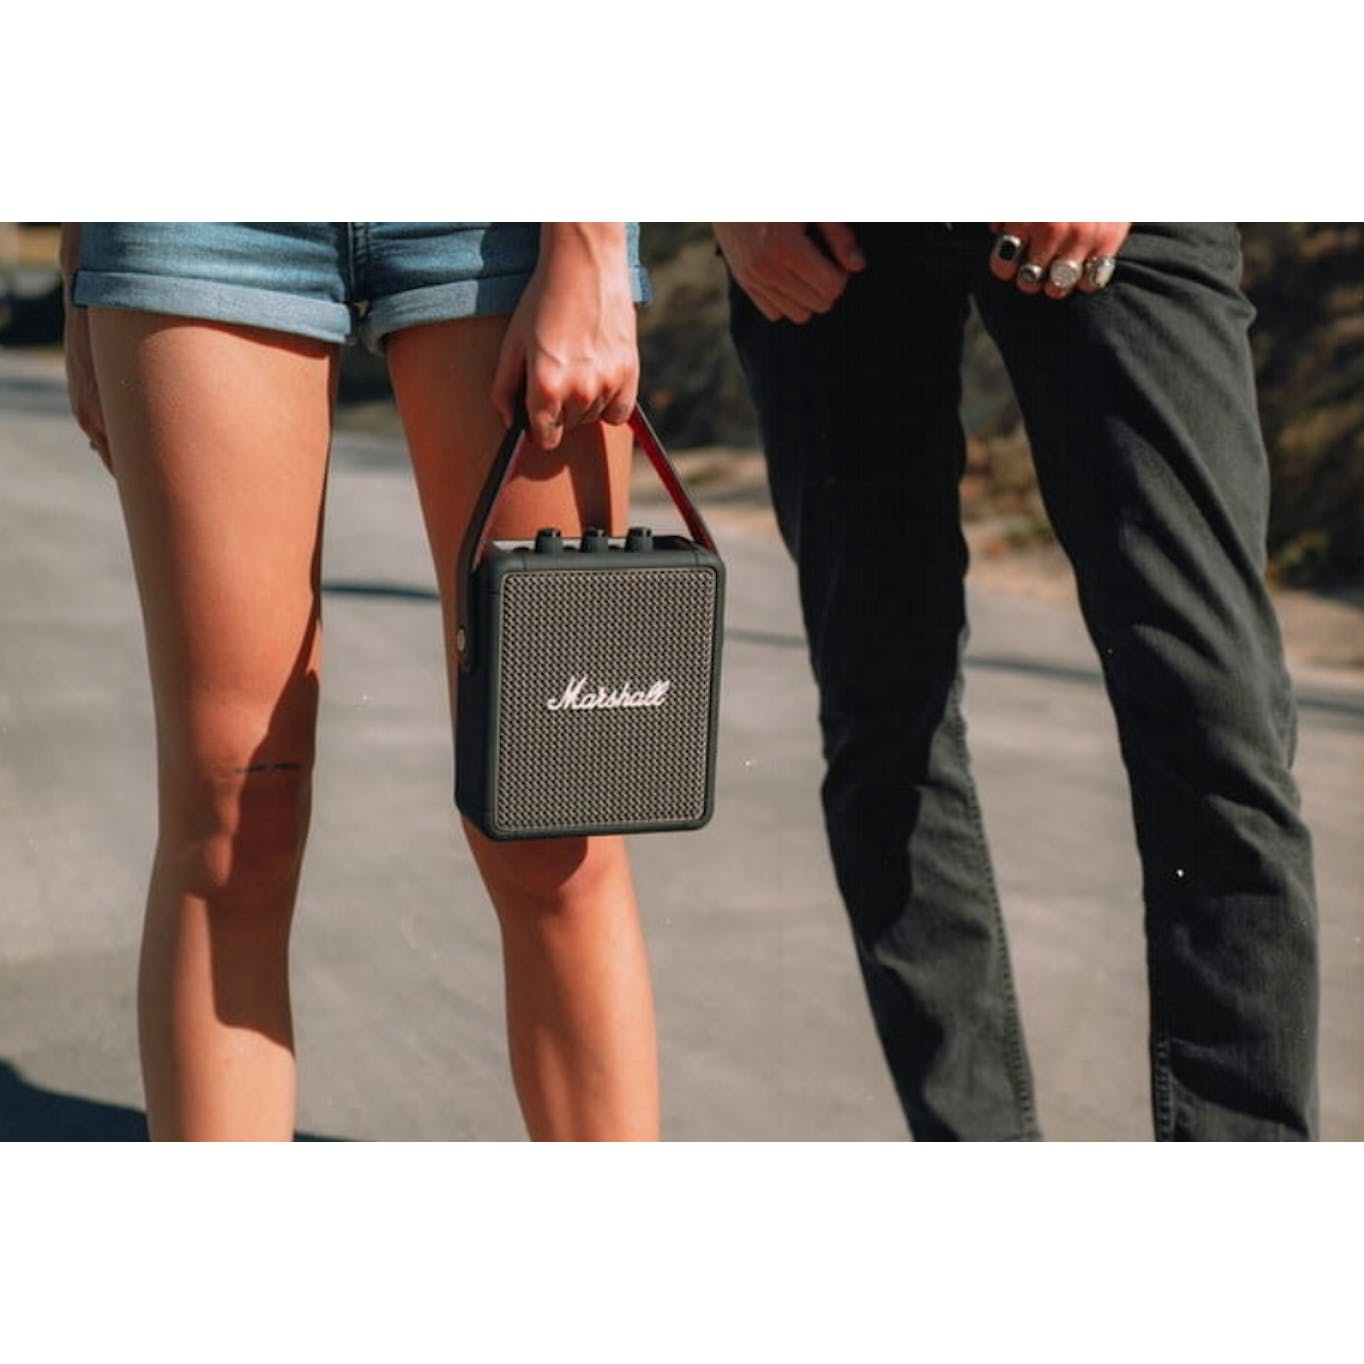 Marshall stockwell II wireless speaker in black being held by a lady